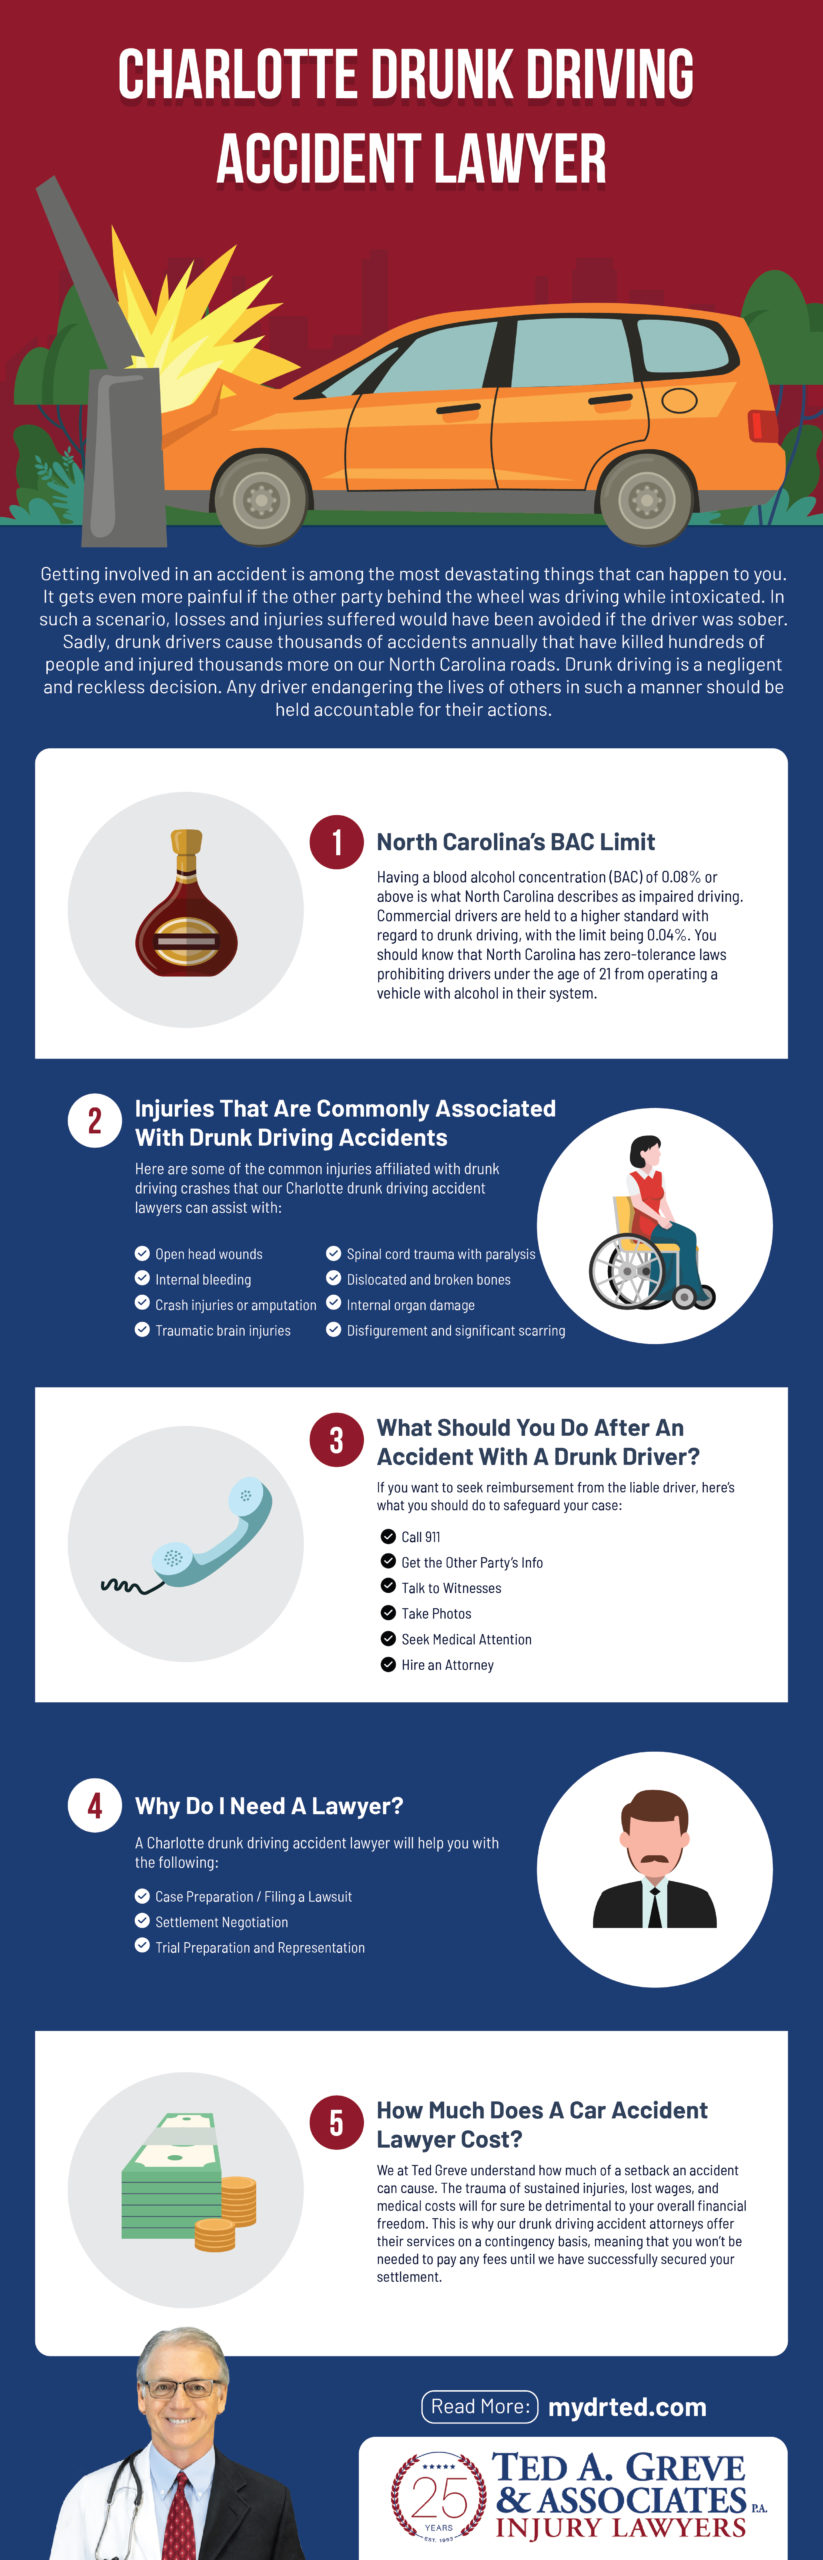 Ted Greve Charlotte Drunk Driving Accident Infographic